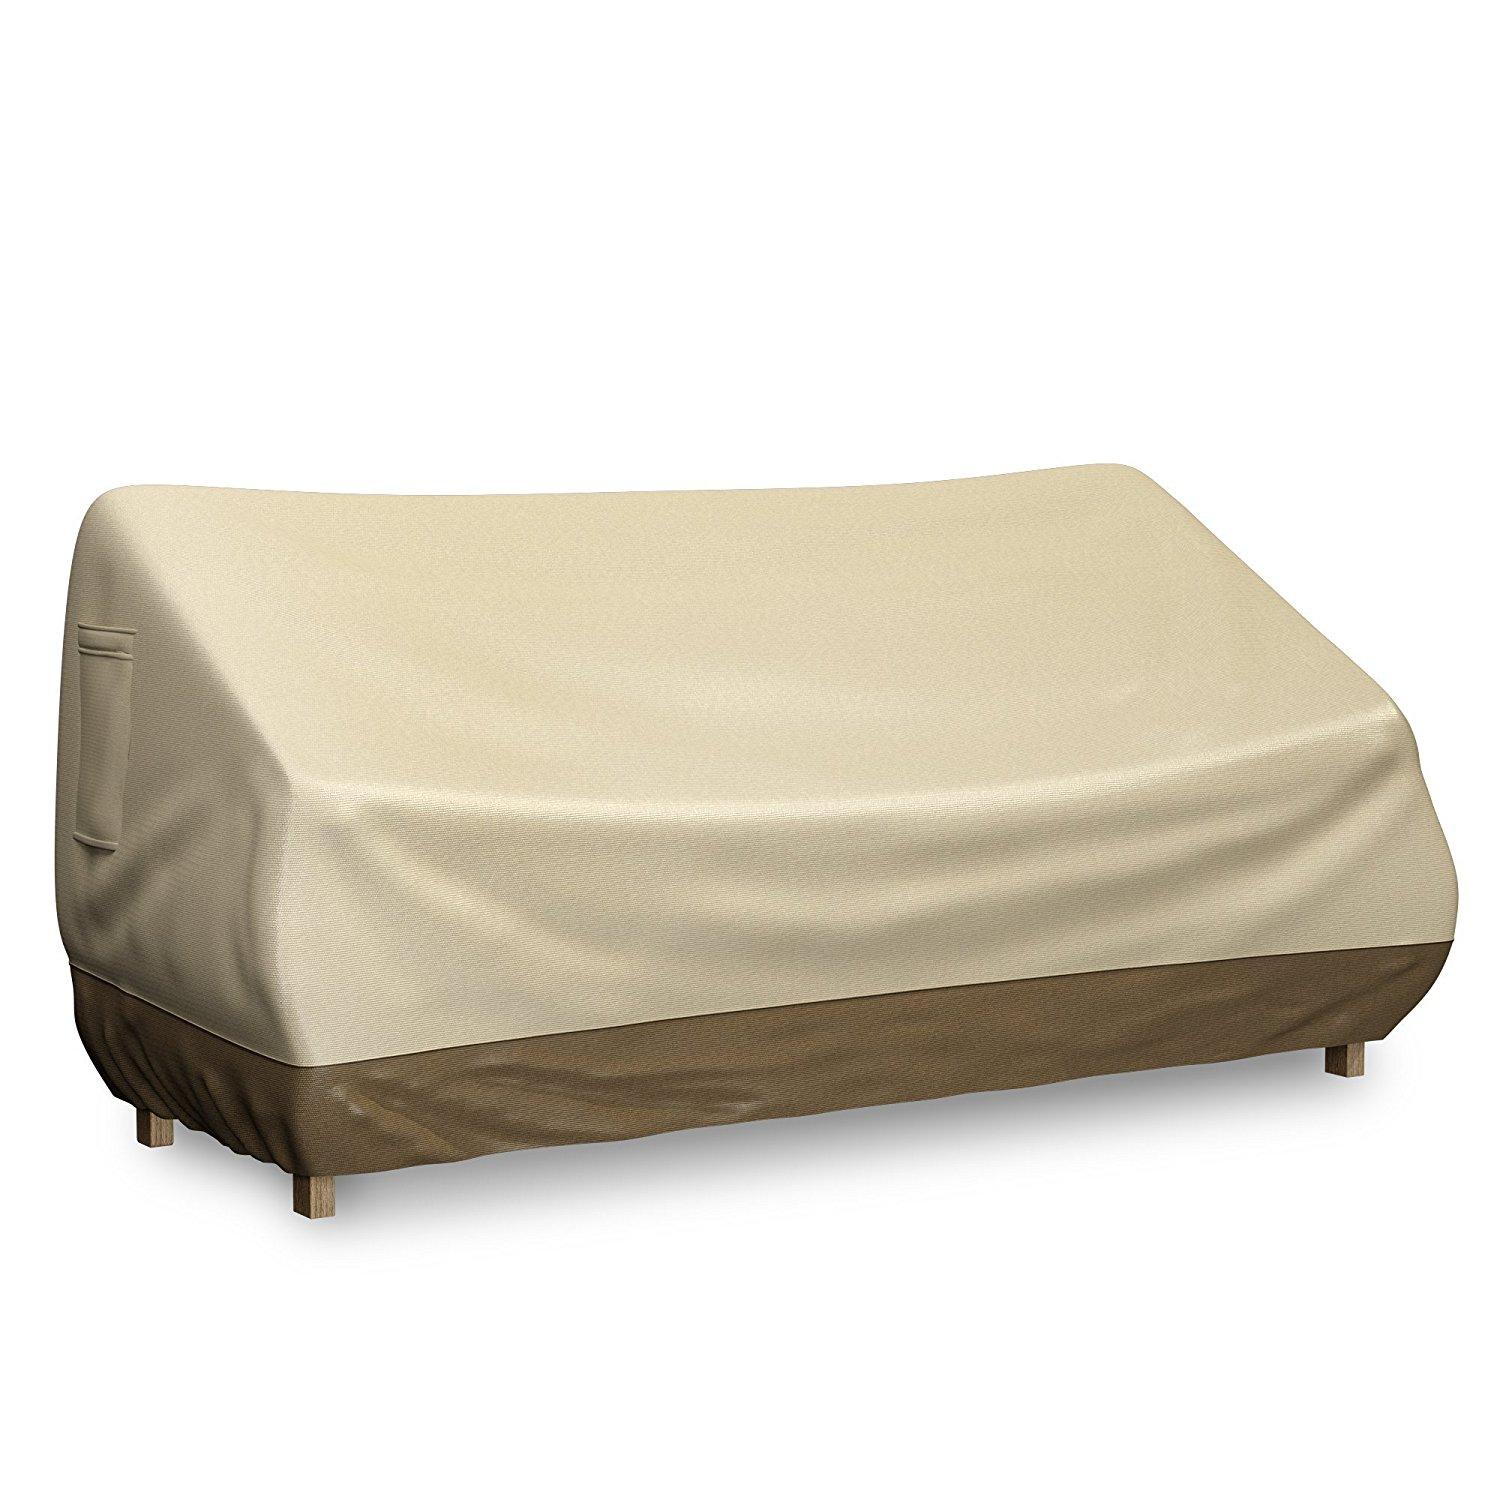 Outdoor Couch Best Outdoor Couch Cover Patio Sofa Covers Reviews